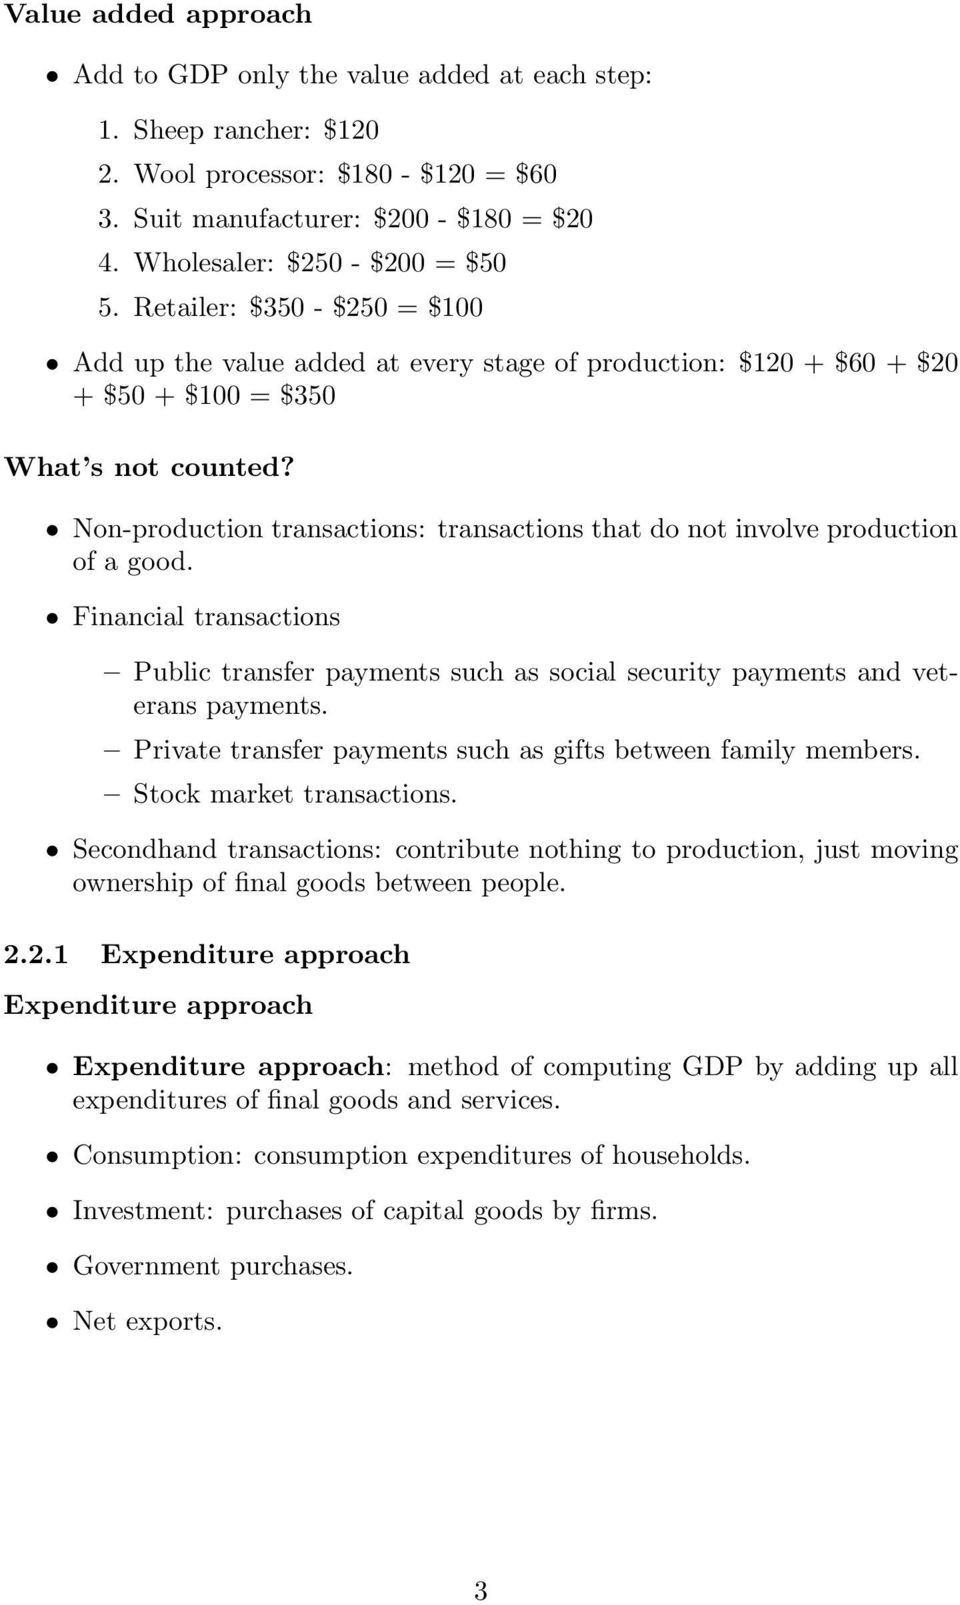 Non-production transactions: transactions that do not involve production of a good. Financial transactions Public transfer payments such as social security payments and veterans payments.